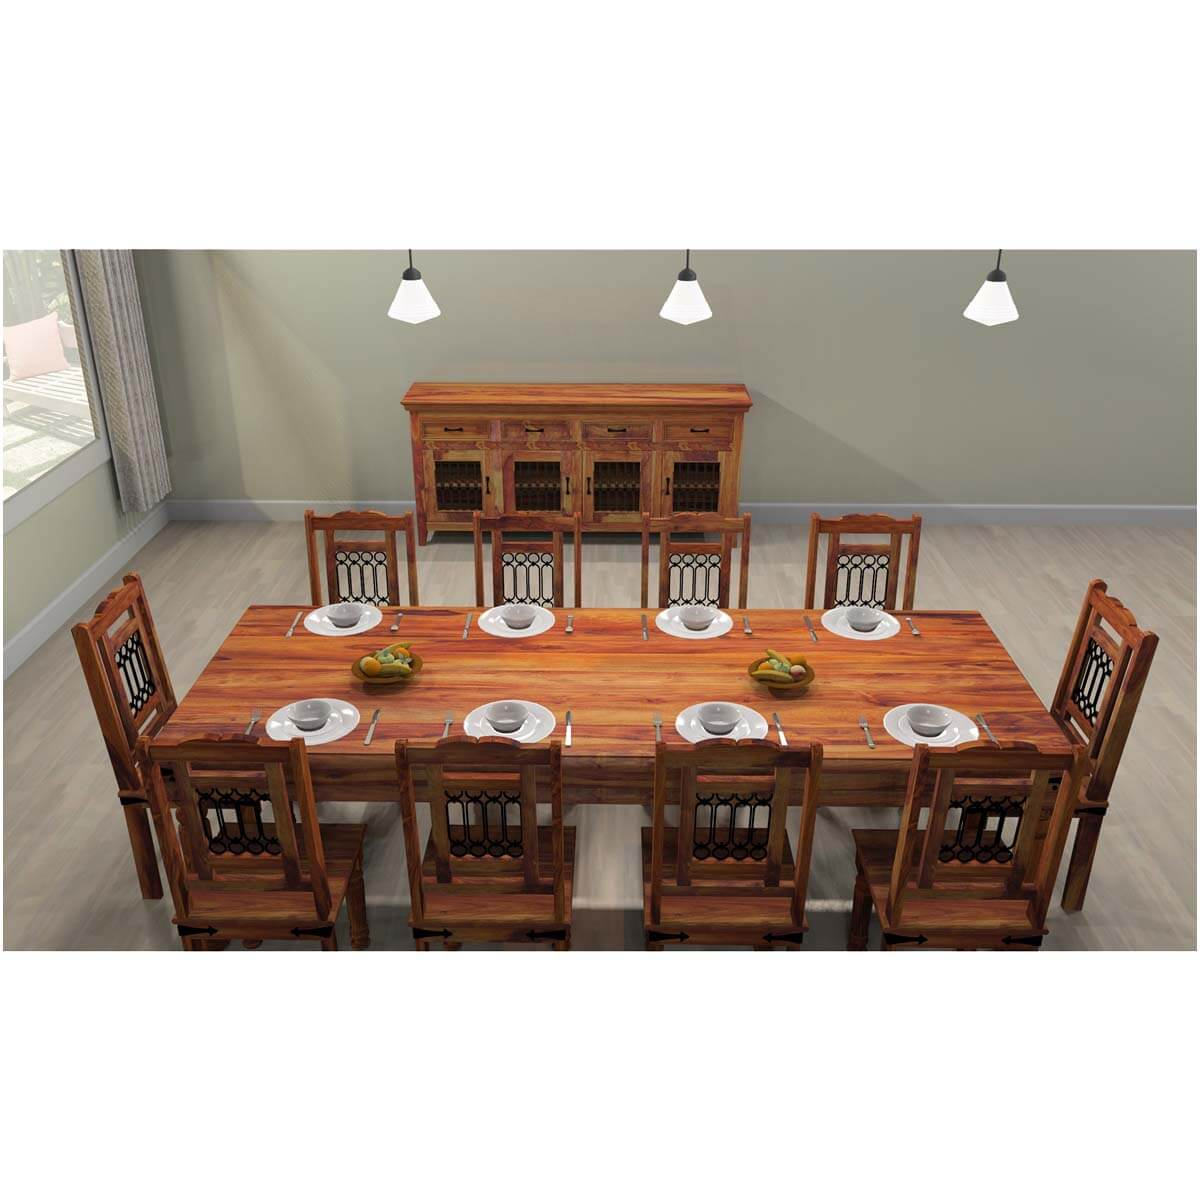 Rustic Solid Wood Large Dining Room Table Chair Set Furniture - Dining room table solid wood